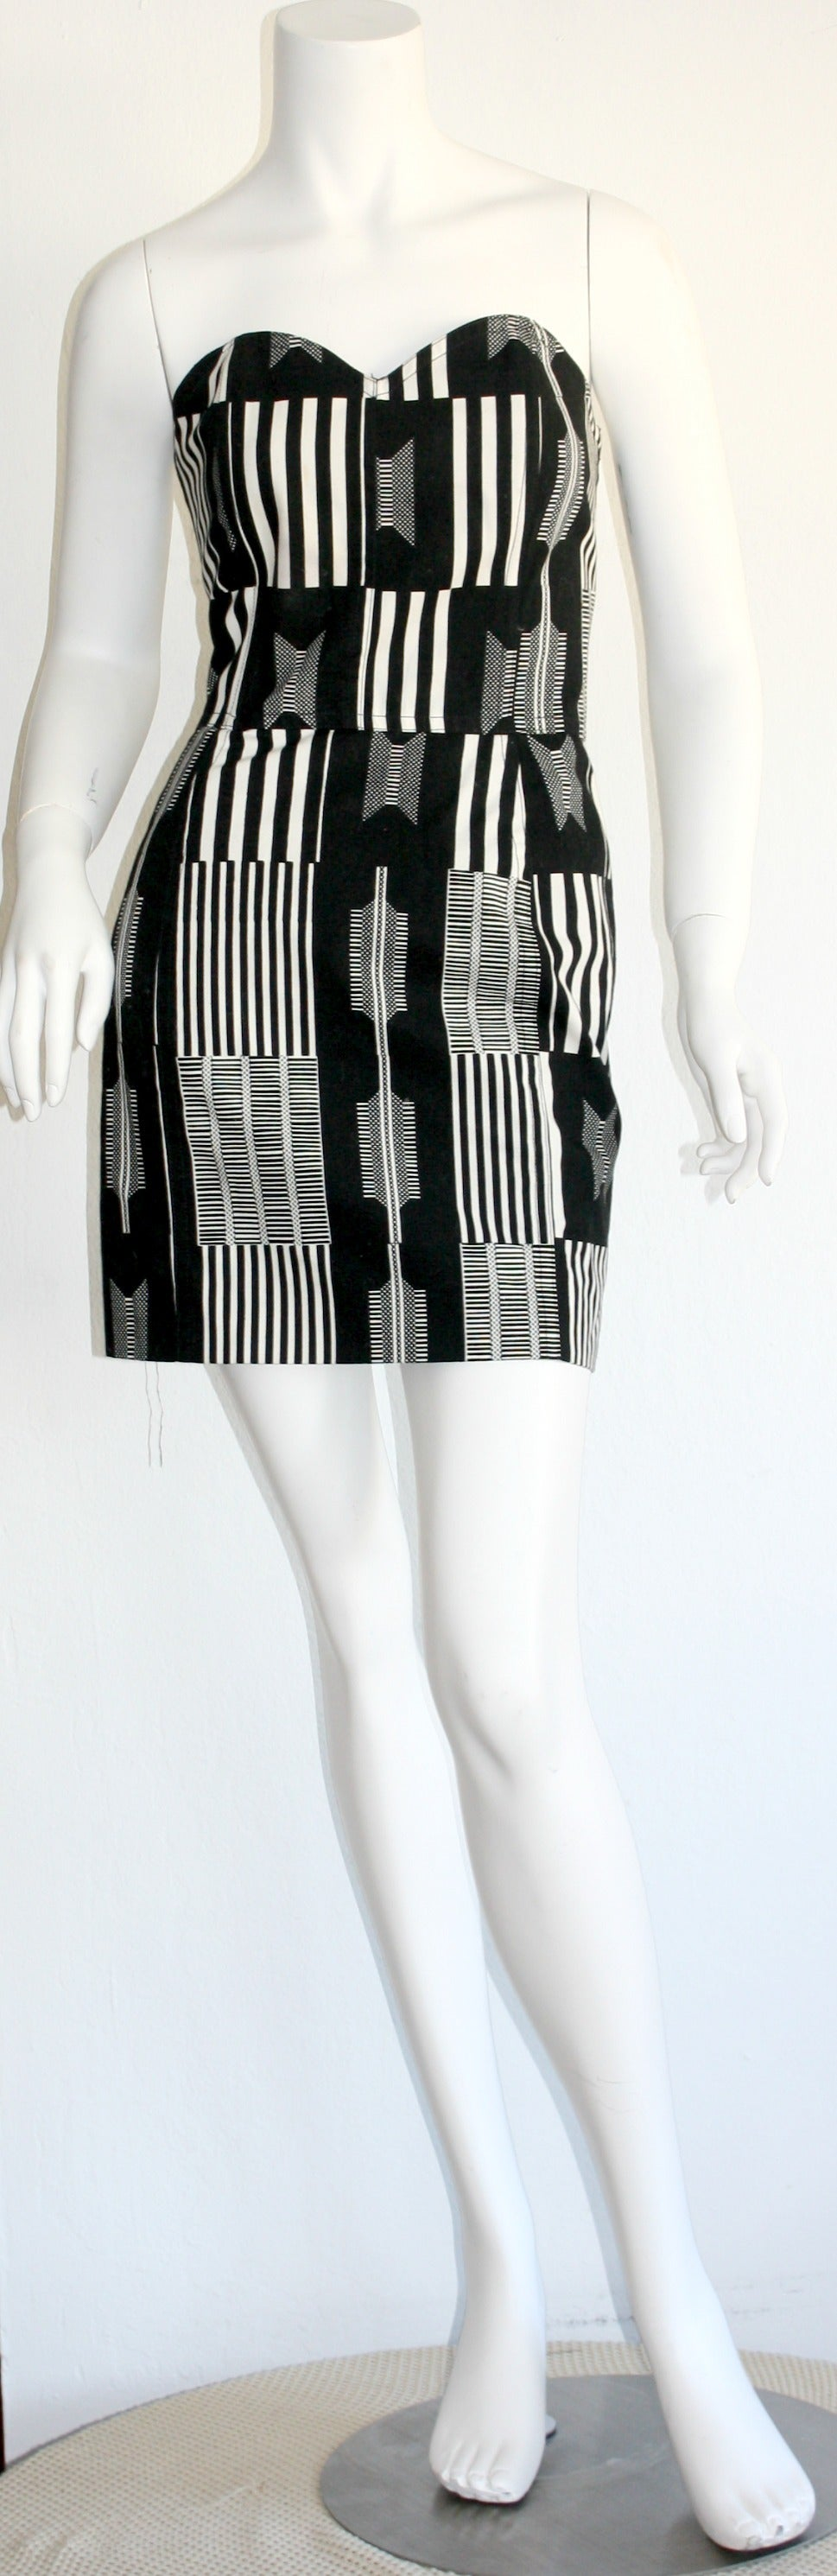 "Incredibly rare vintage Patrick Kelly ""Barcode"" dress! Black and white barcode print throughout. Stunning shape, that is very flattering on the body. Looks great alone, or belted. Fully lined. In great condition. Approximately Size"